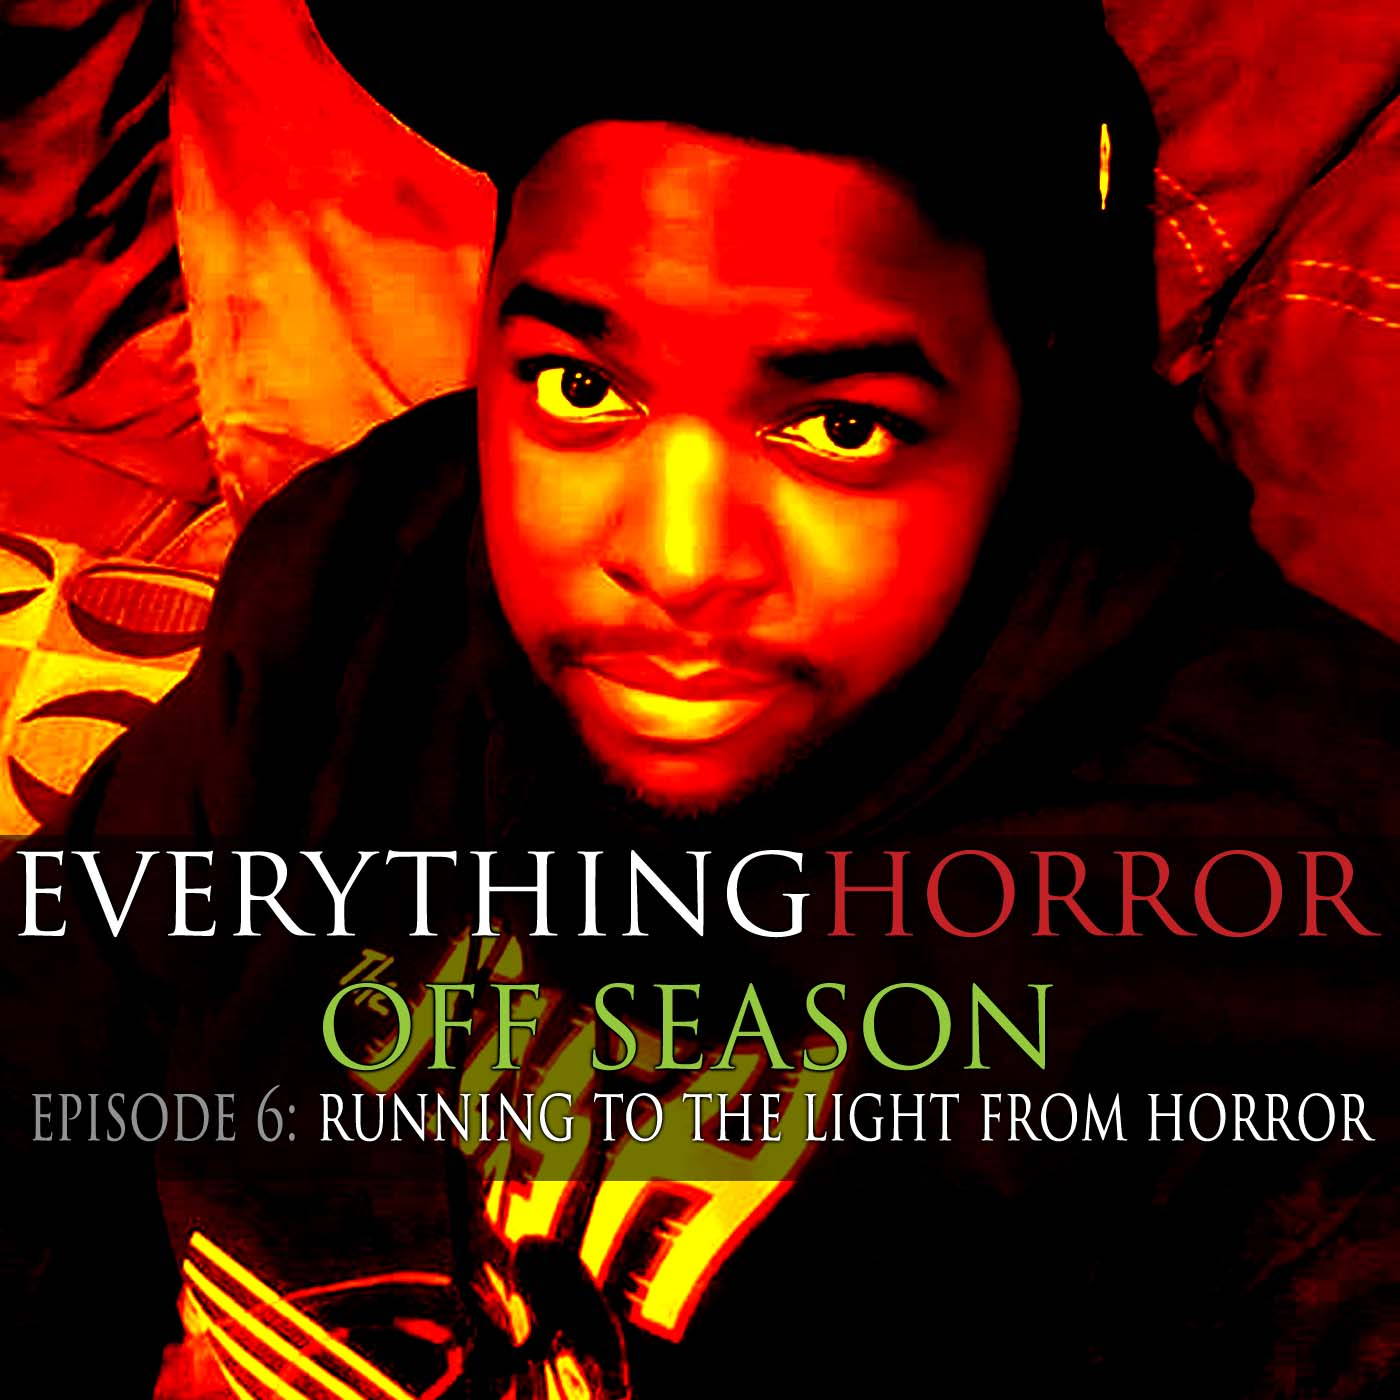 Off Season: Episode 6 - Running to the Light from Horror